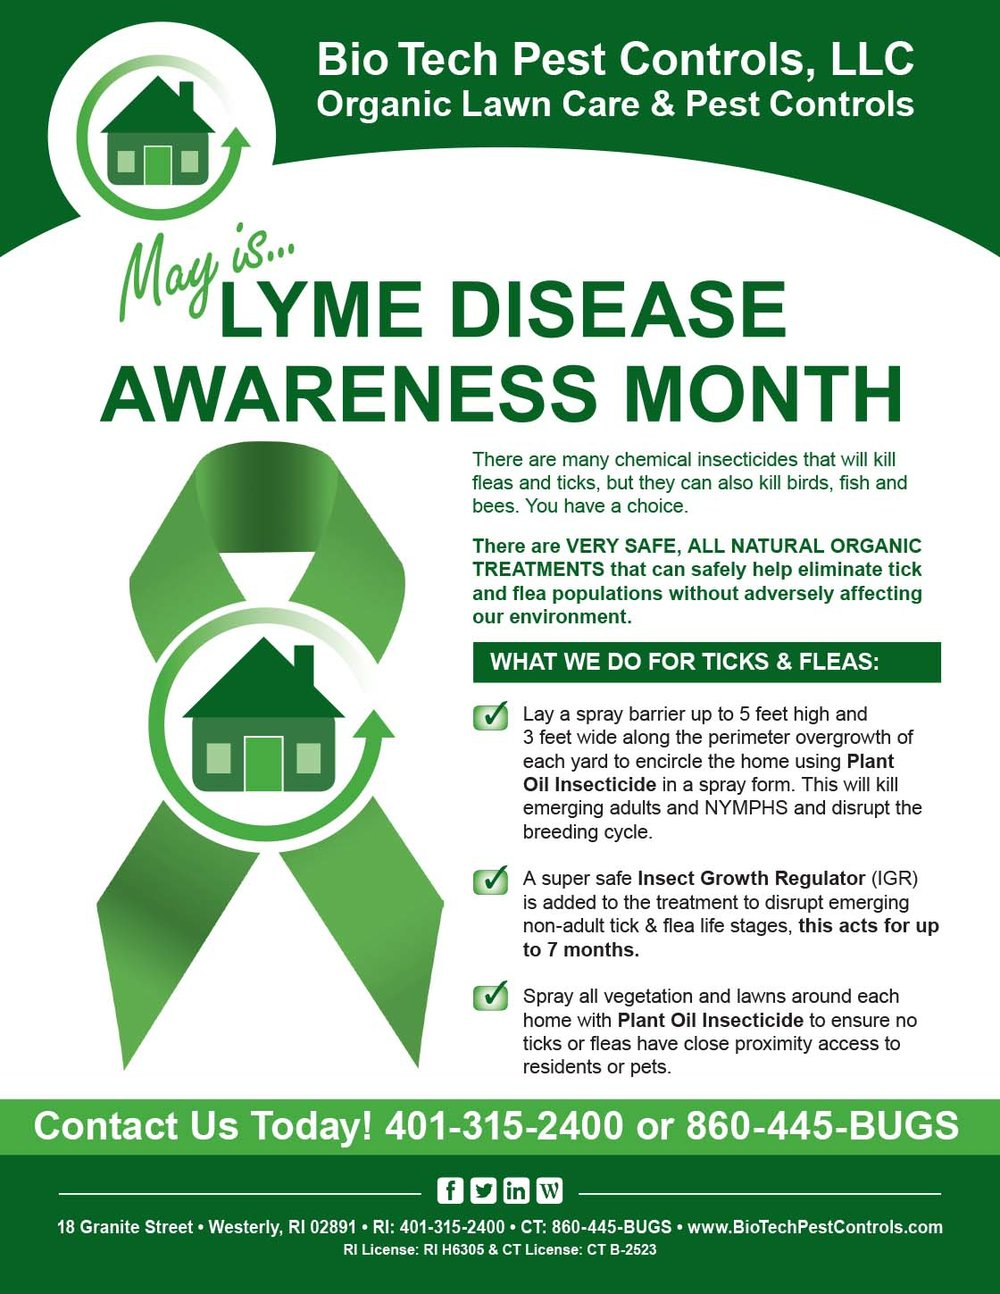 Lyme_Disease_Awareness_Flyer.jpg